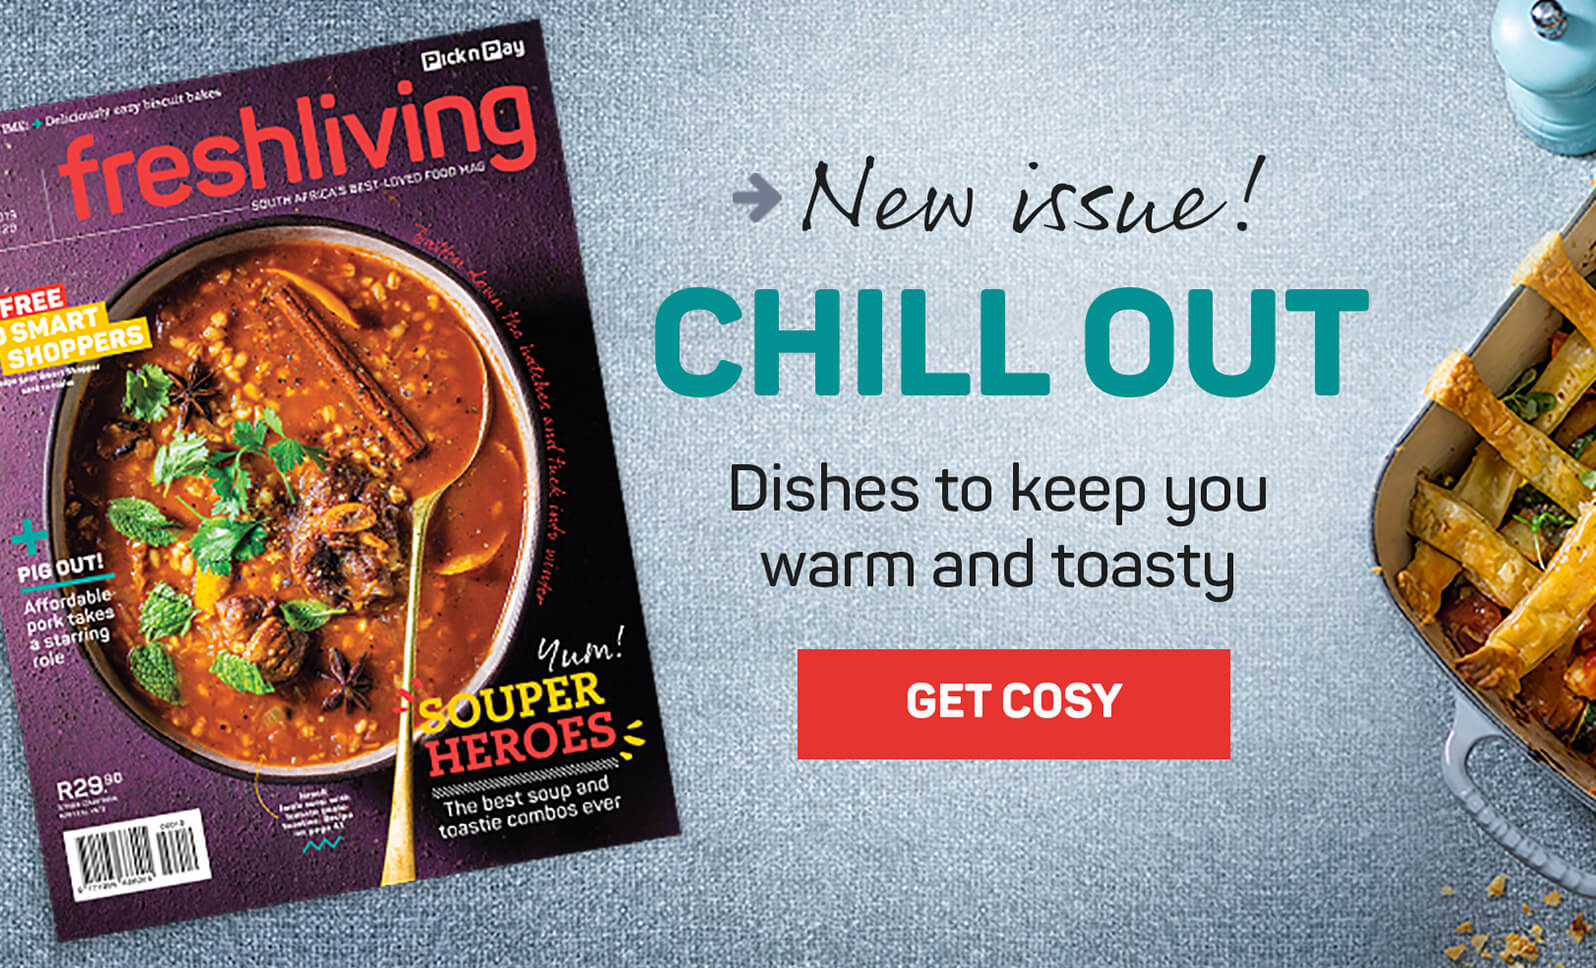 New issue. Chill out. Dishes to keep you warm and toasty. Get cosy